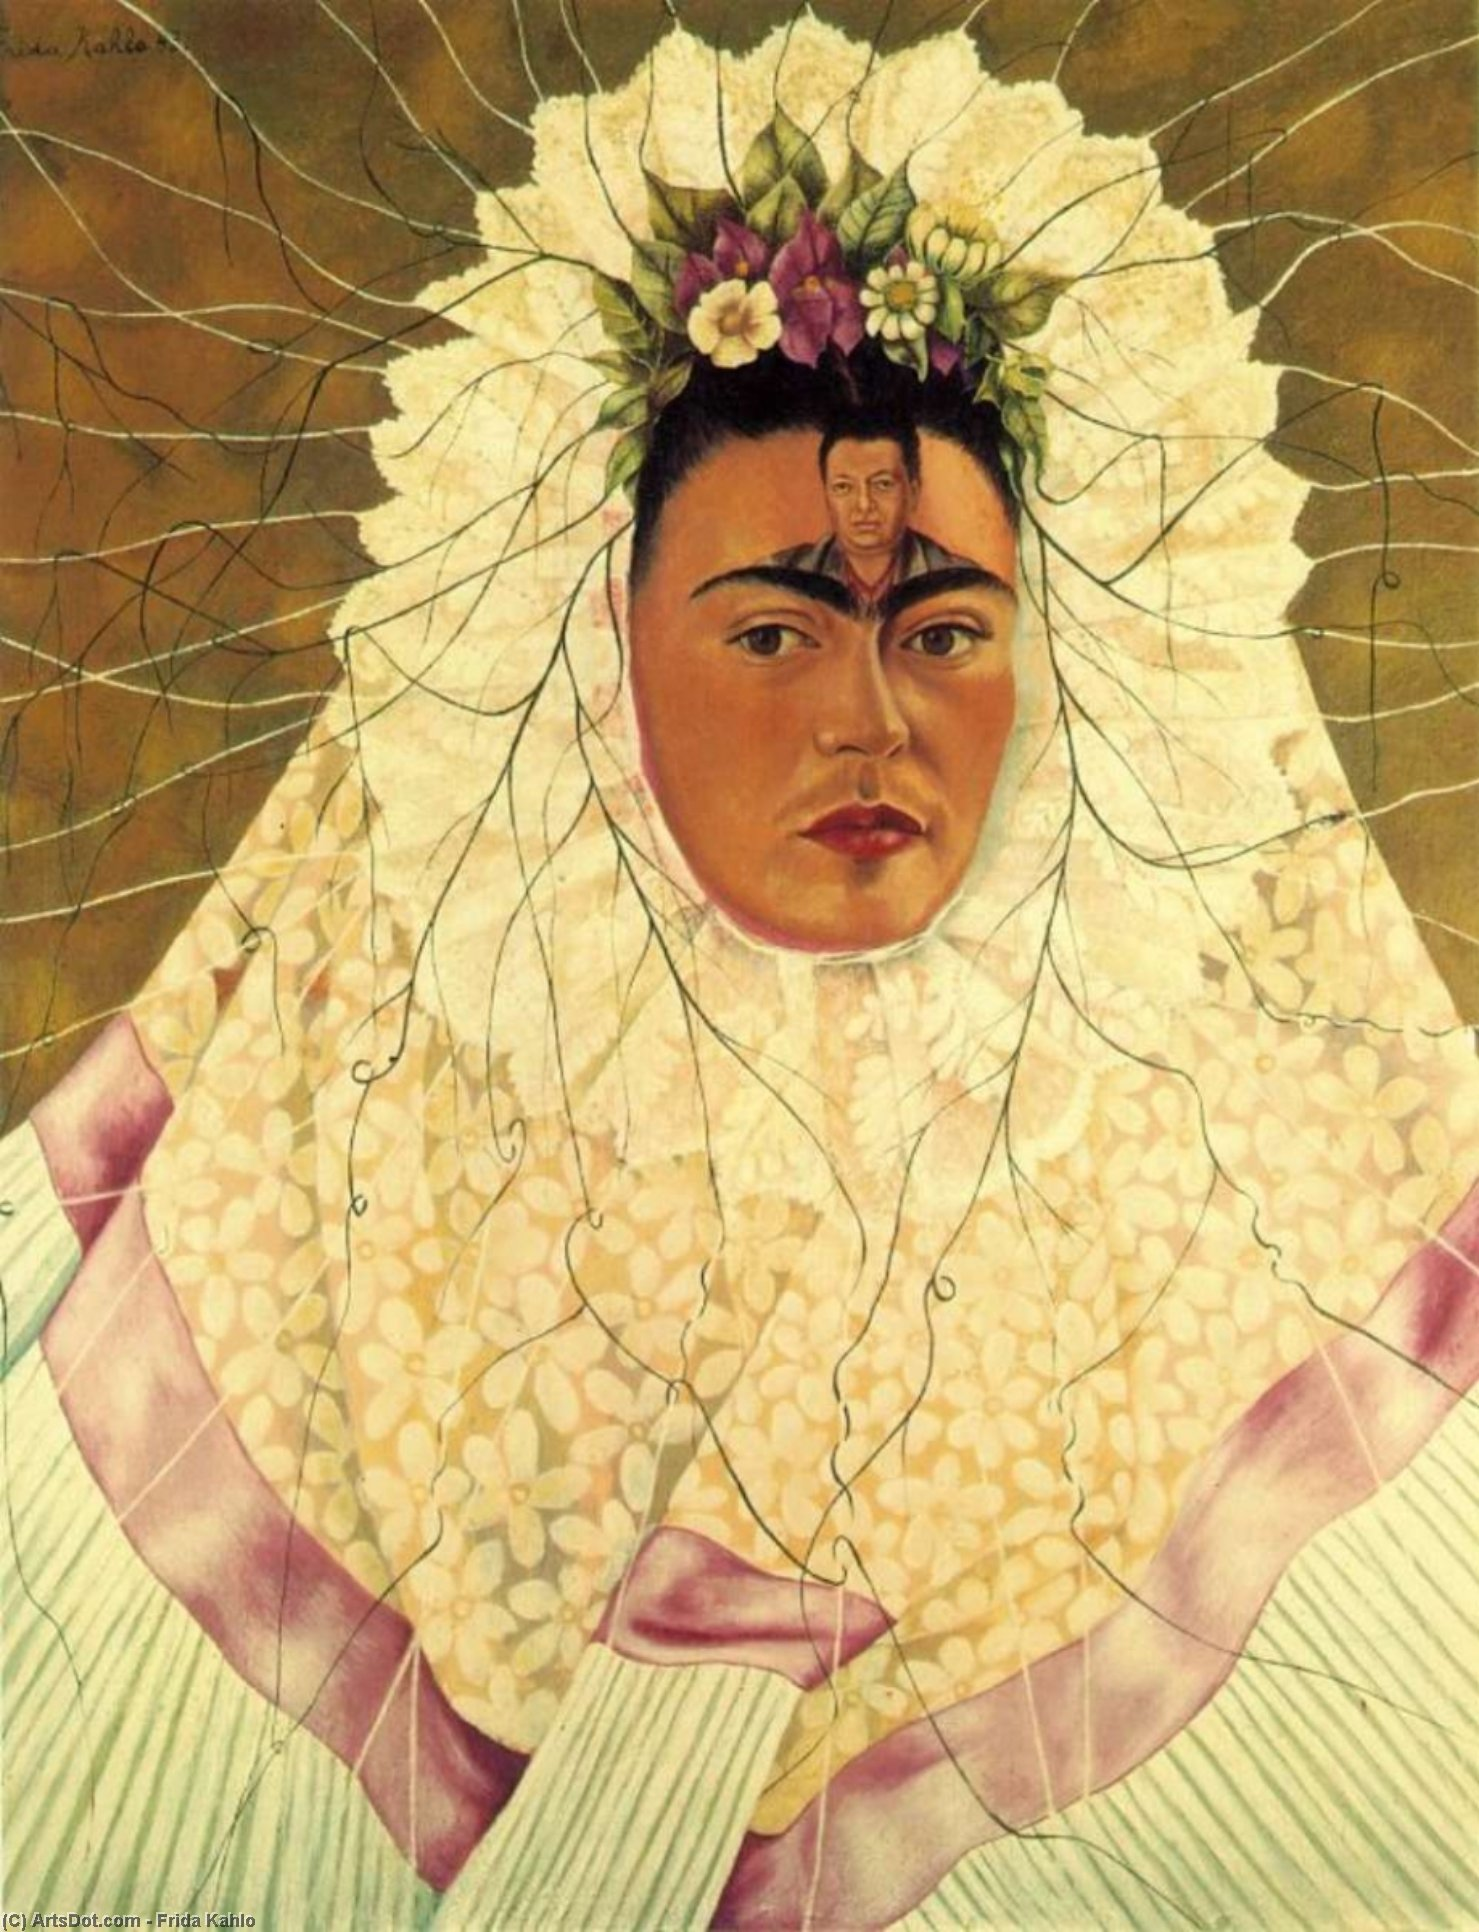 Self-Portrait as a Tehuana (Diego in My Thoughts) by Frida Kahlo (1907-1954, Mexico)